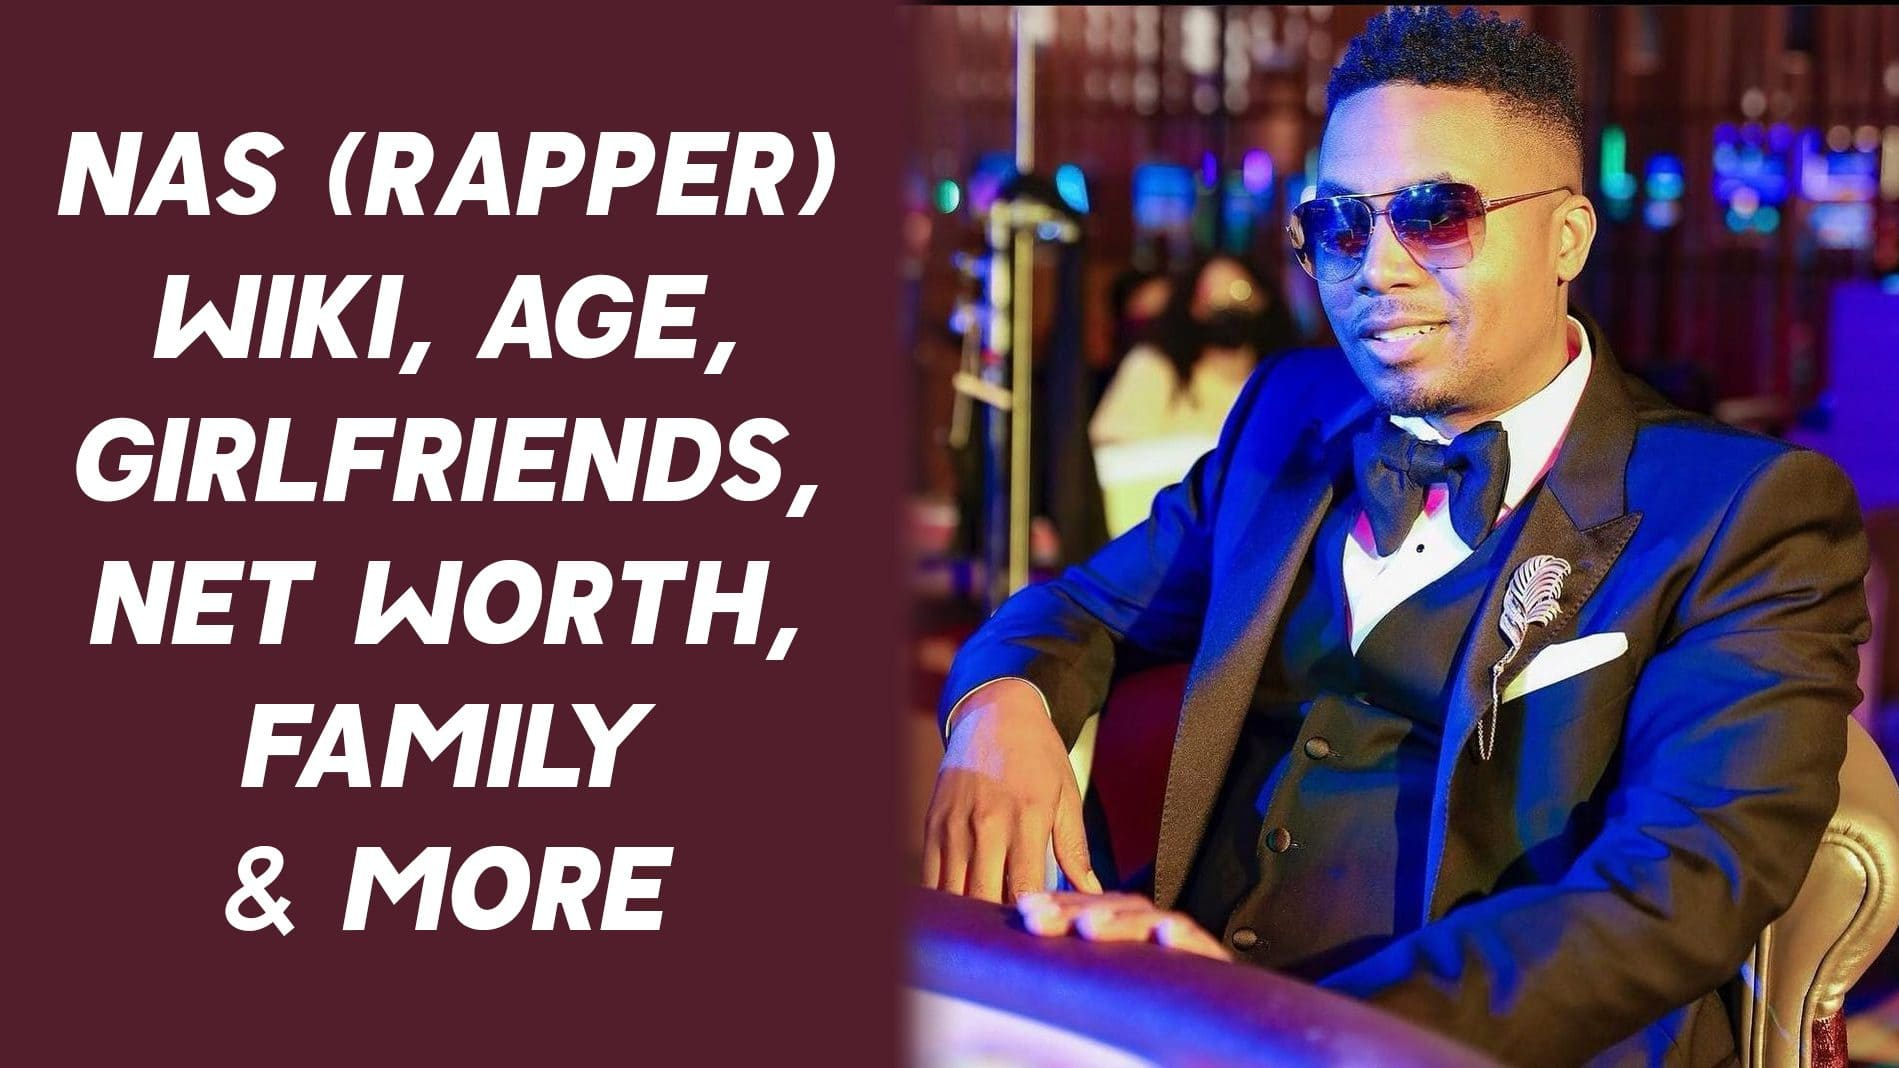 Nas (Rapper) Wiki, Age, Girlfriends, Net Worth, Family & More 1